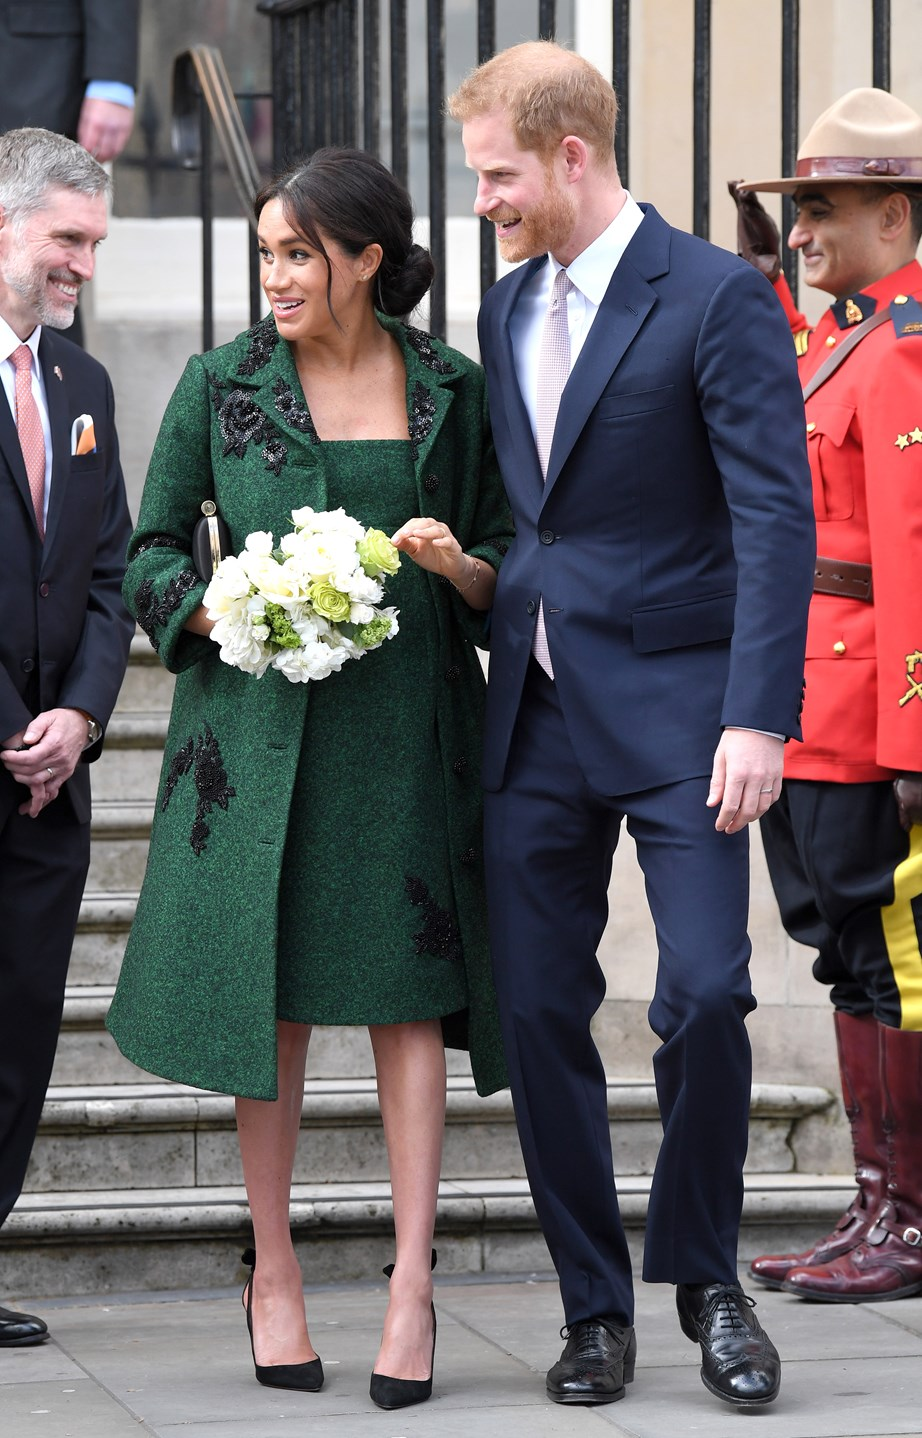 "On Commonwealth Day on March 11, the Duchess of Sussex wore a gorgeous green bespoke dress and coat by Erdem. Featuring intricate black beading, the fashion designer revealed the style is known as [Doria beaded-rose embroidery](https://www.nowtolove.co.nz/celebrity/royals/meghan-markle-commonwealth-celebration-doria-ragland-40774|target=""_blank"") - a perfect nod to Meghan's mother, Doria Ragland. The stylish royal completed her look with Aquazzura heels and a matching Givenchy clutch. *(Image: Getty)*"